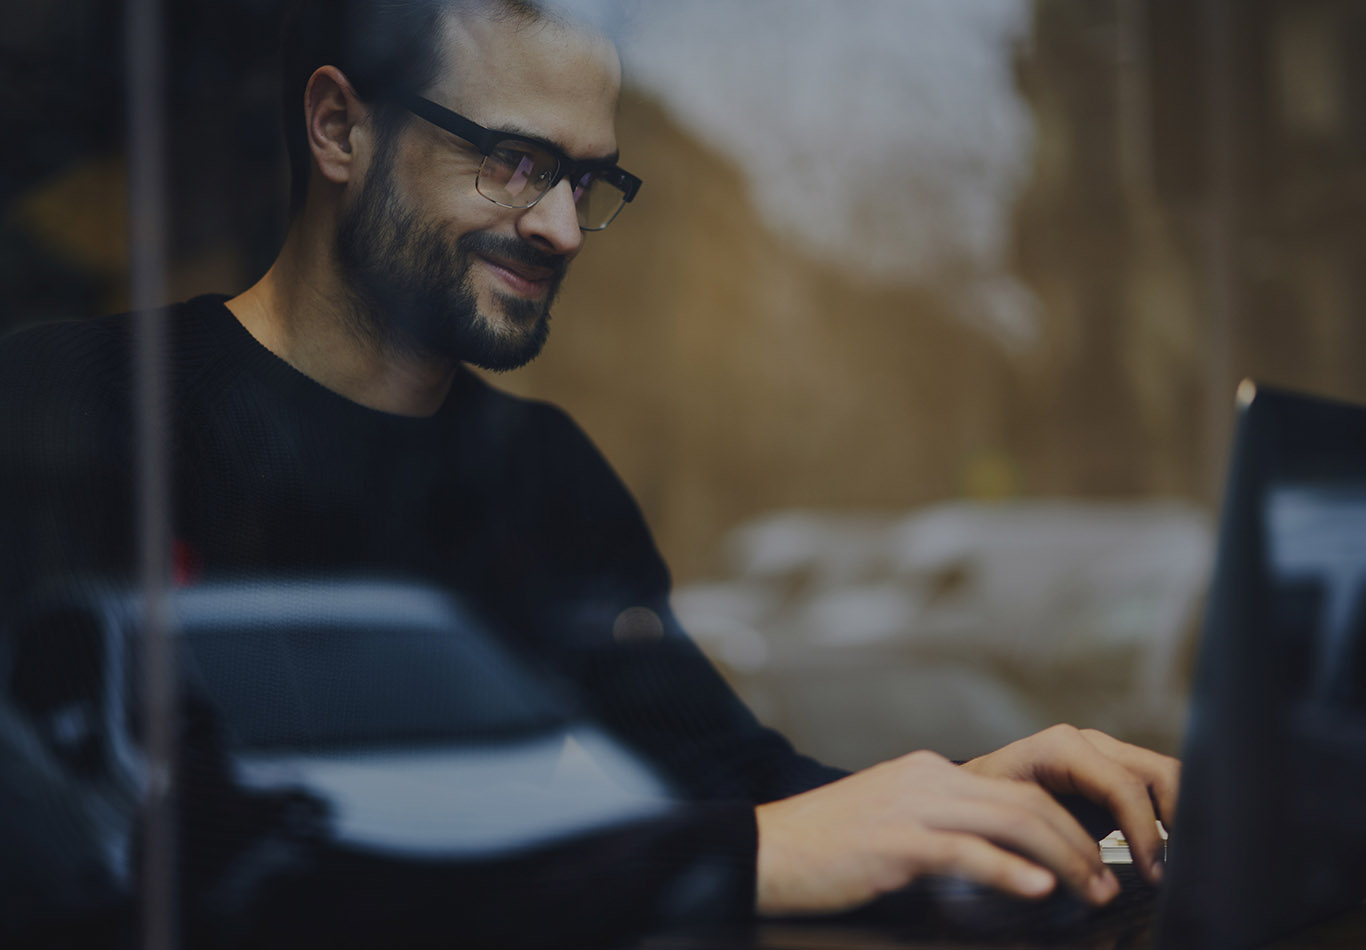 A bearded man wearing glasses is working on a laptop